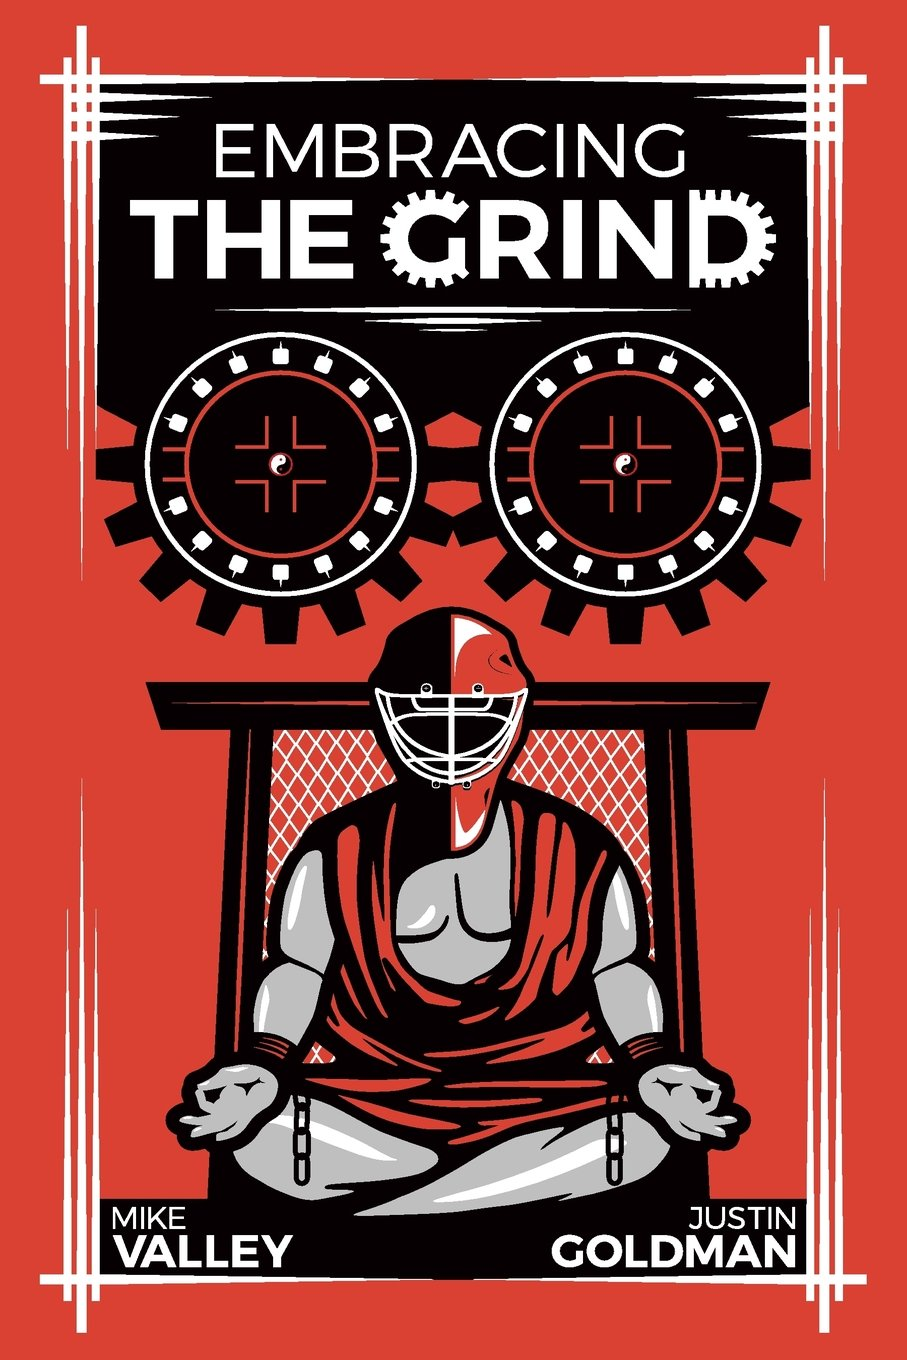 Embracing The Grind: Amazon.co.uk: Justin Goldman, Mike Valley:  9781537721736: Books